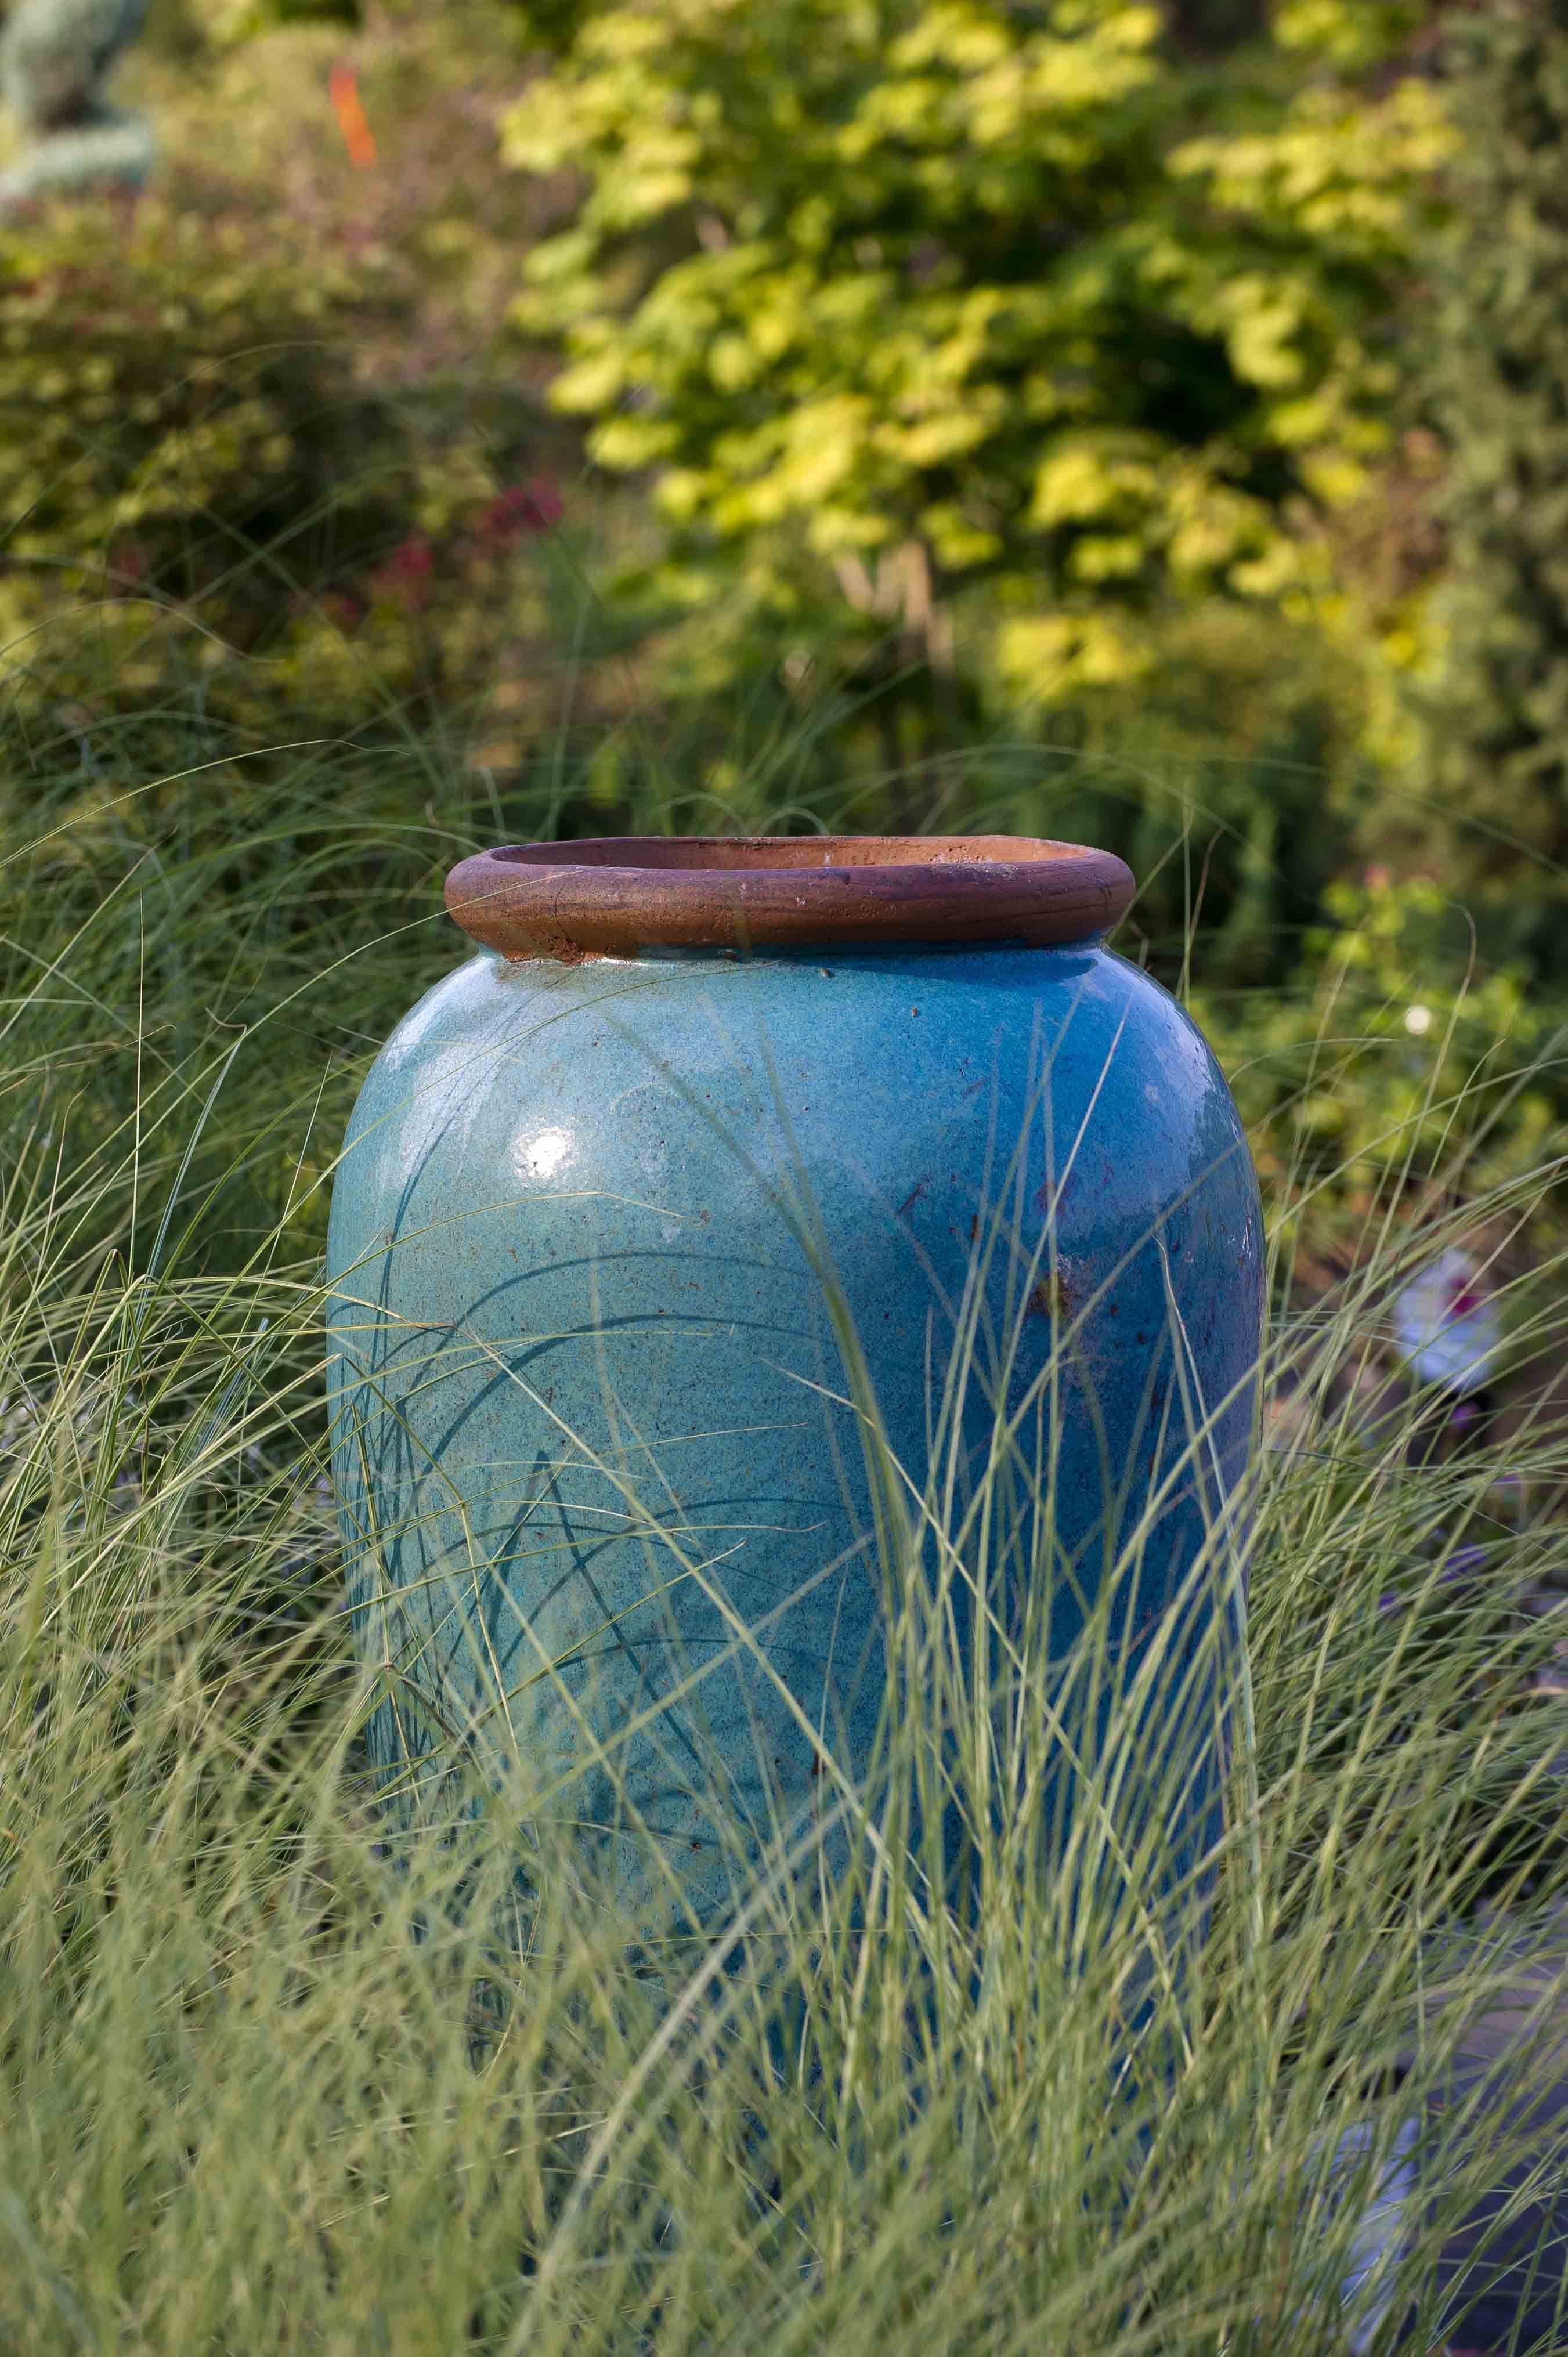 Blue Rustic Jar And Grasses By Gasper